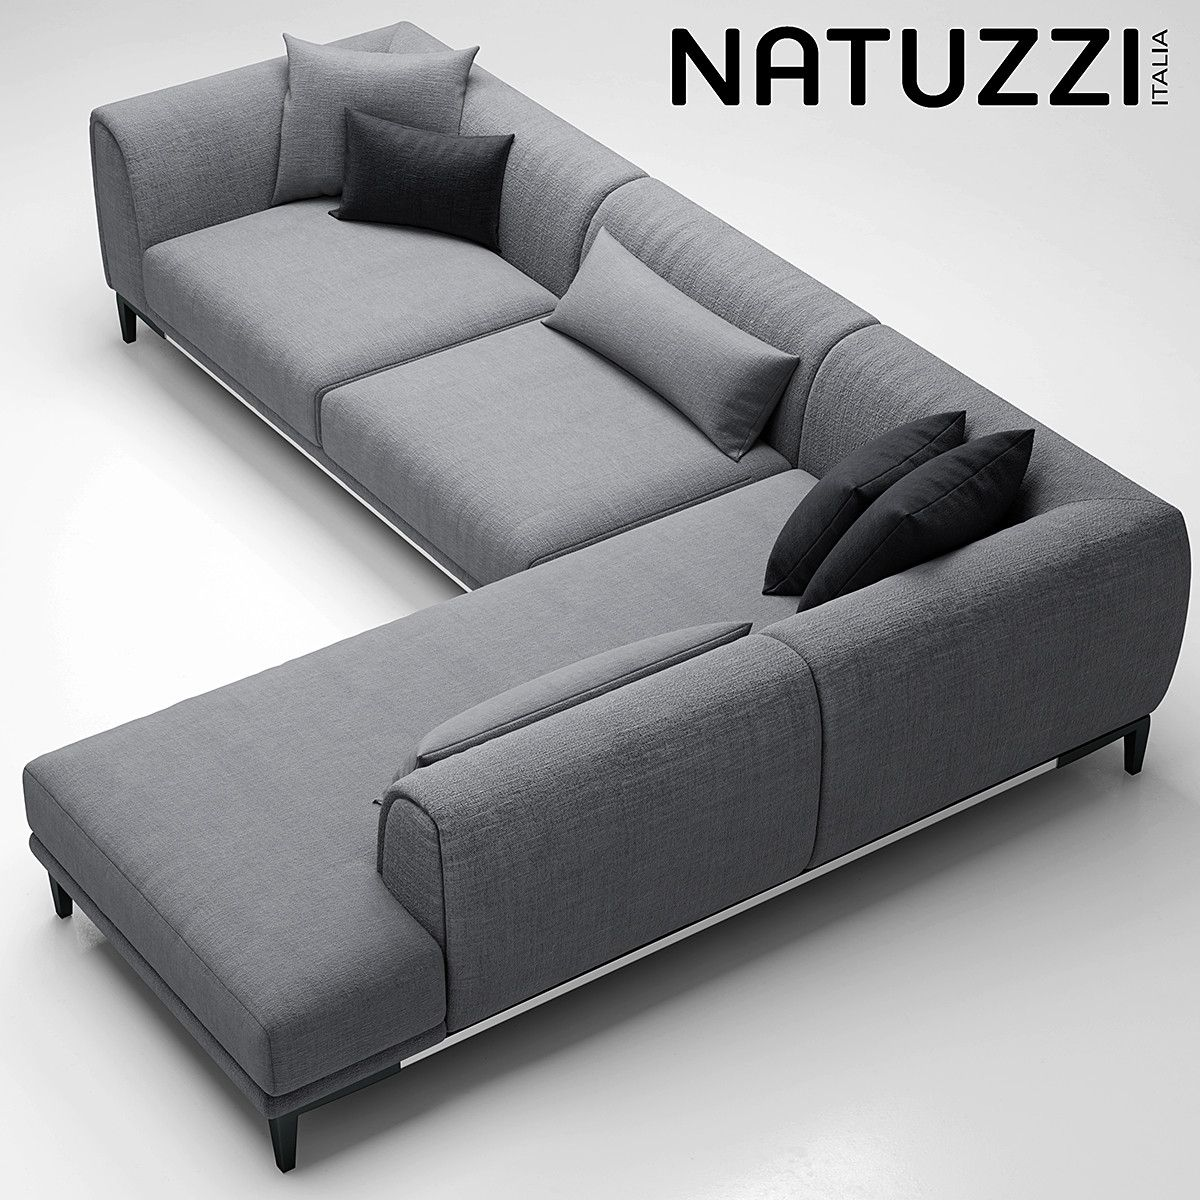 sofa natuzzi trevi 3d model | corner sofa design, living